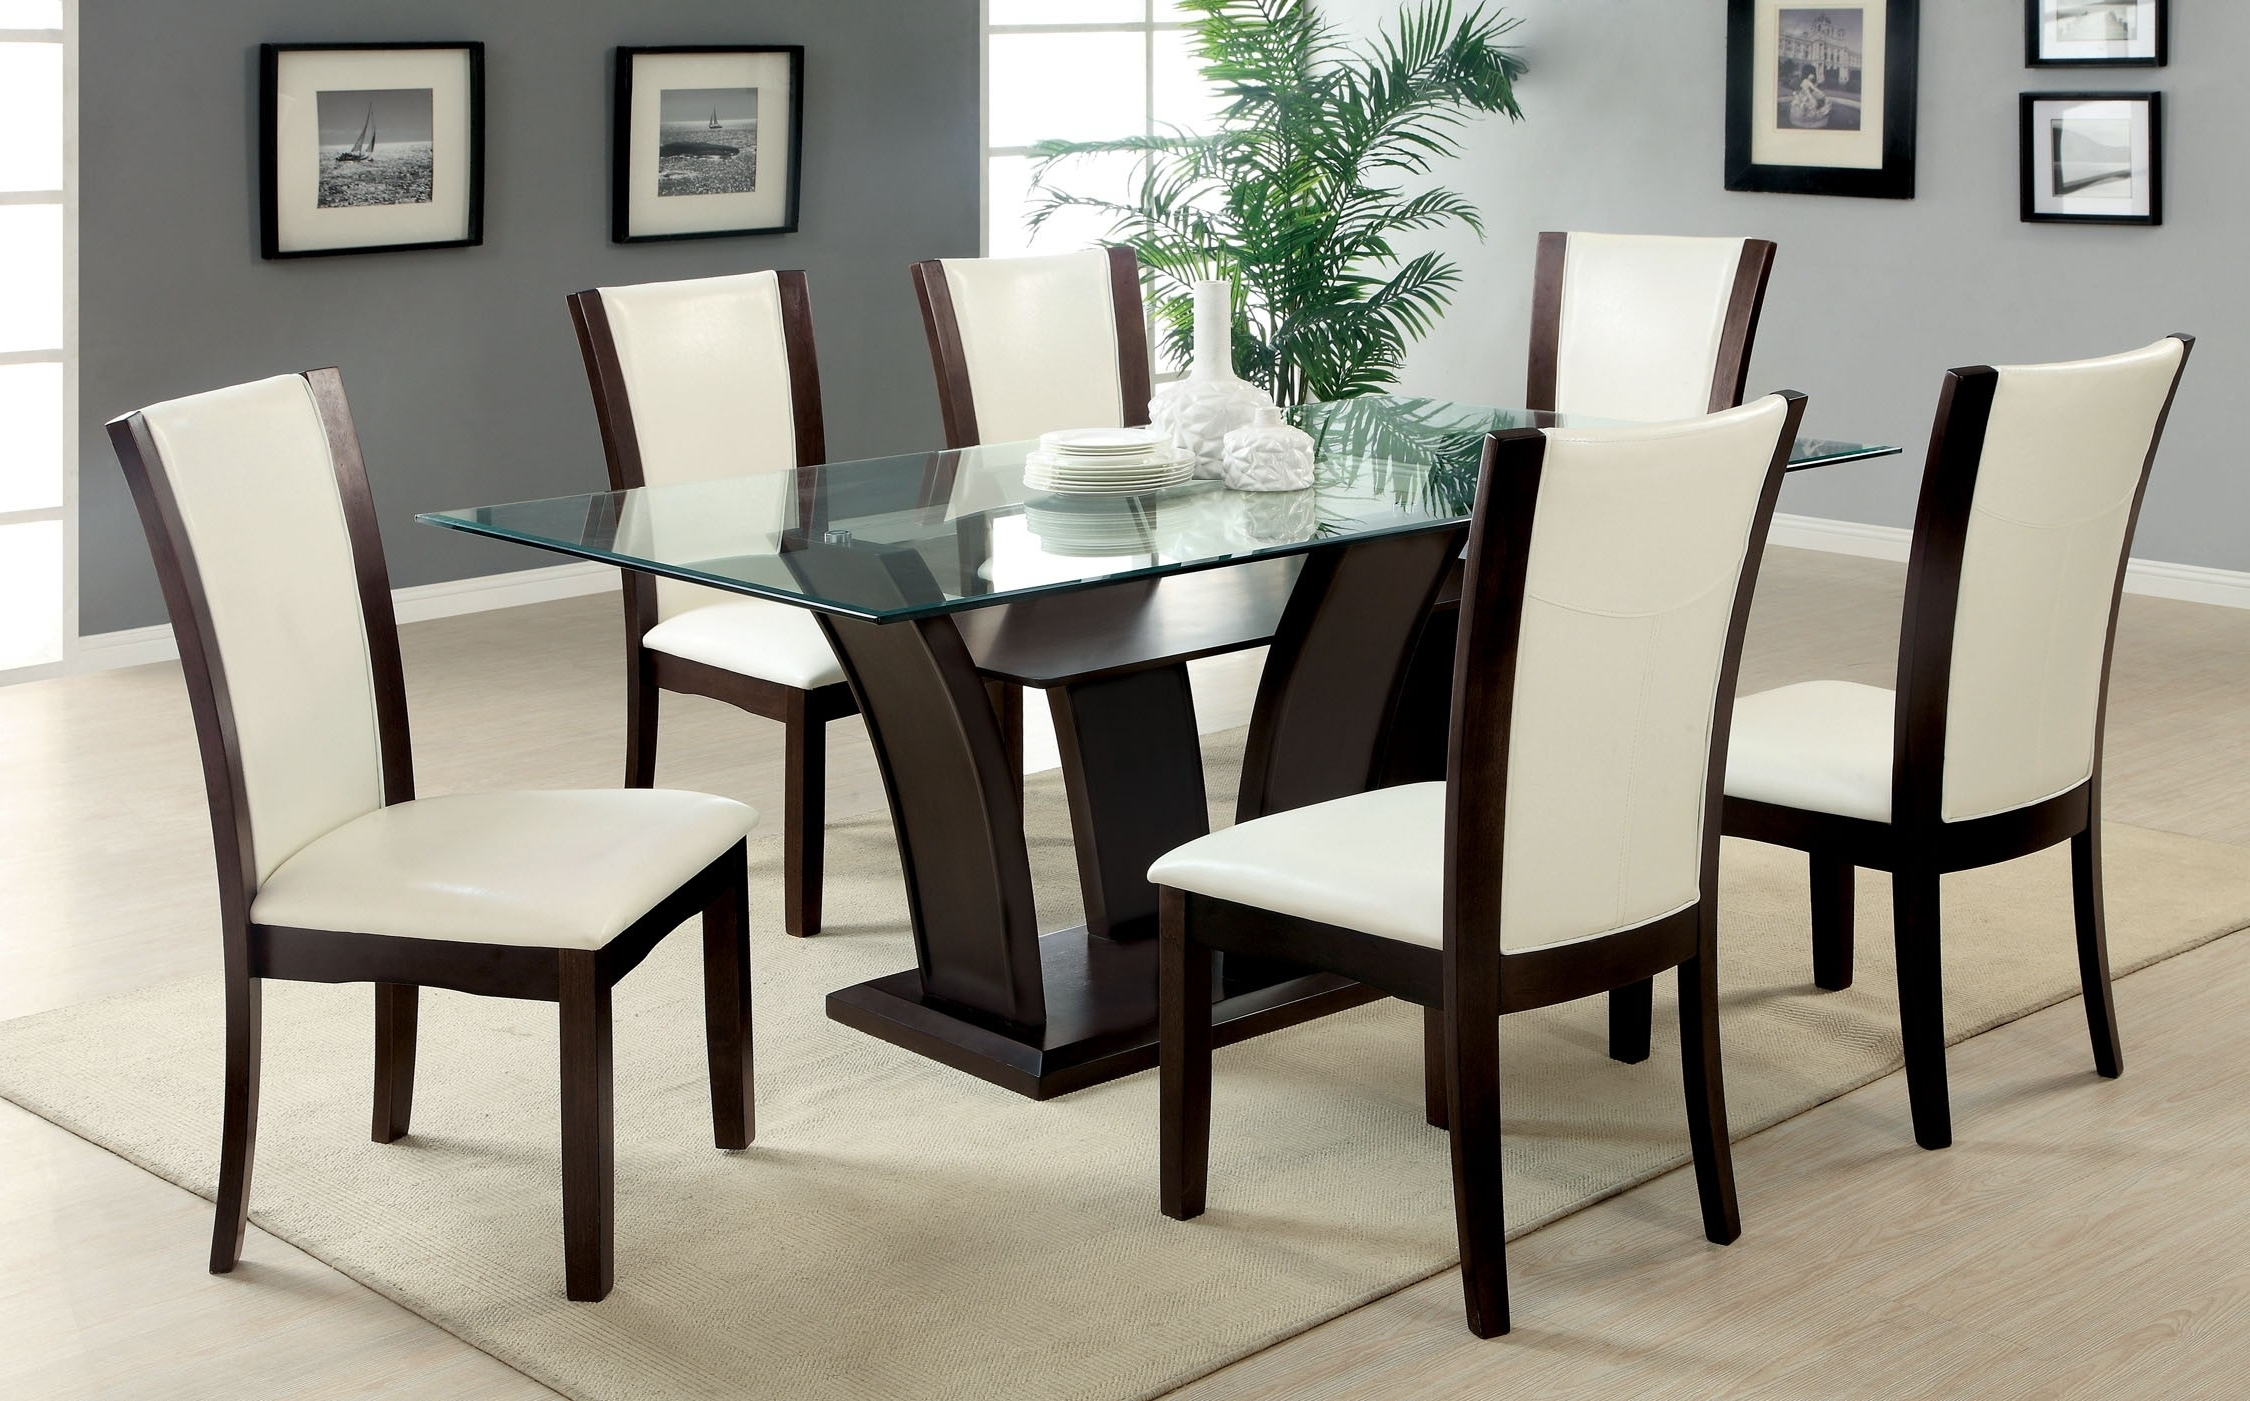 Preferred 6 Seat Dining Table Sets Throughout 6 Seater Glass Dining Table Sets • Table Setting Ideas (View 3 of 25)